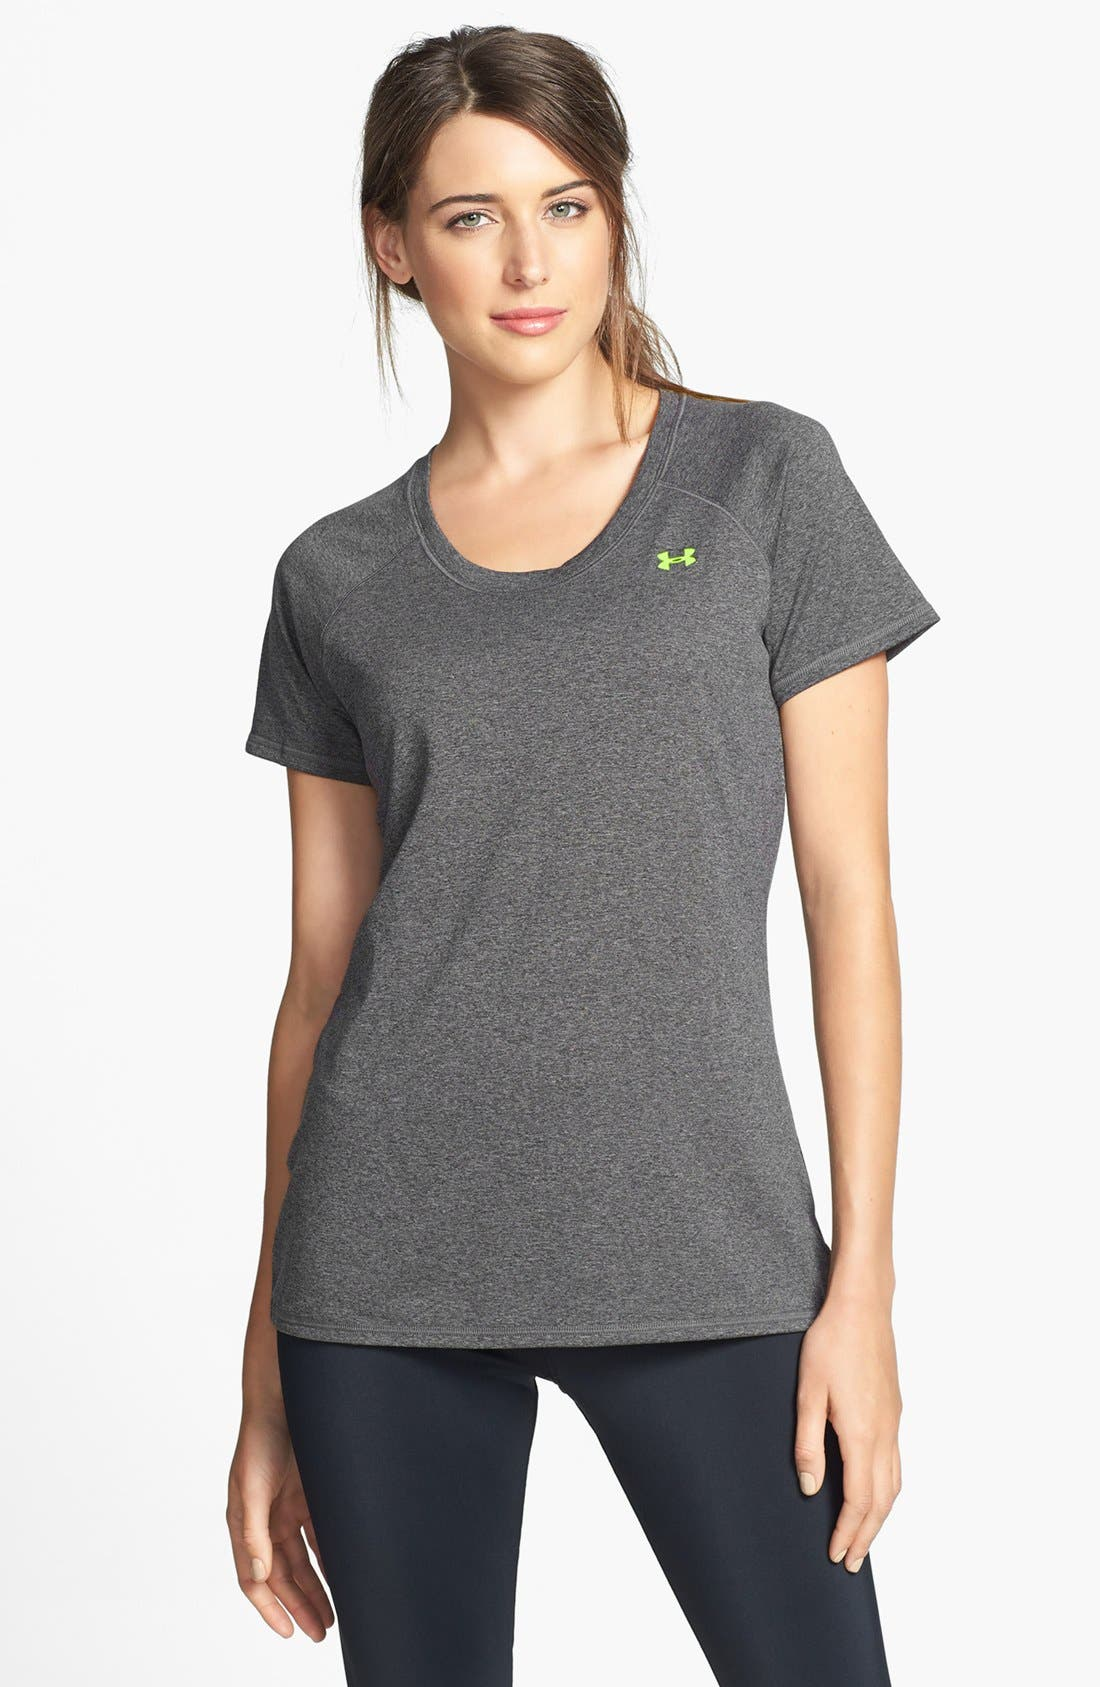 Main Image - Under Armour 'Go the Distance' Tee